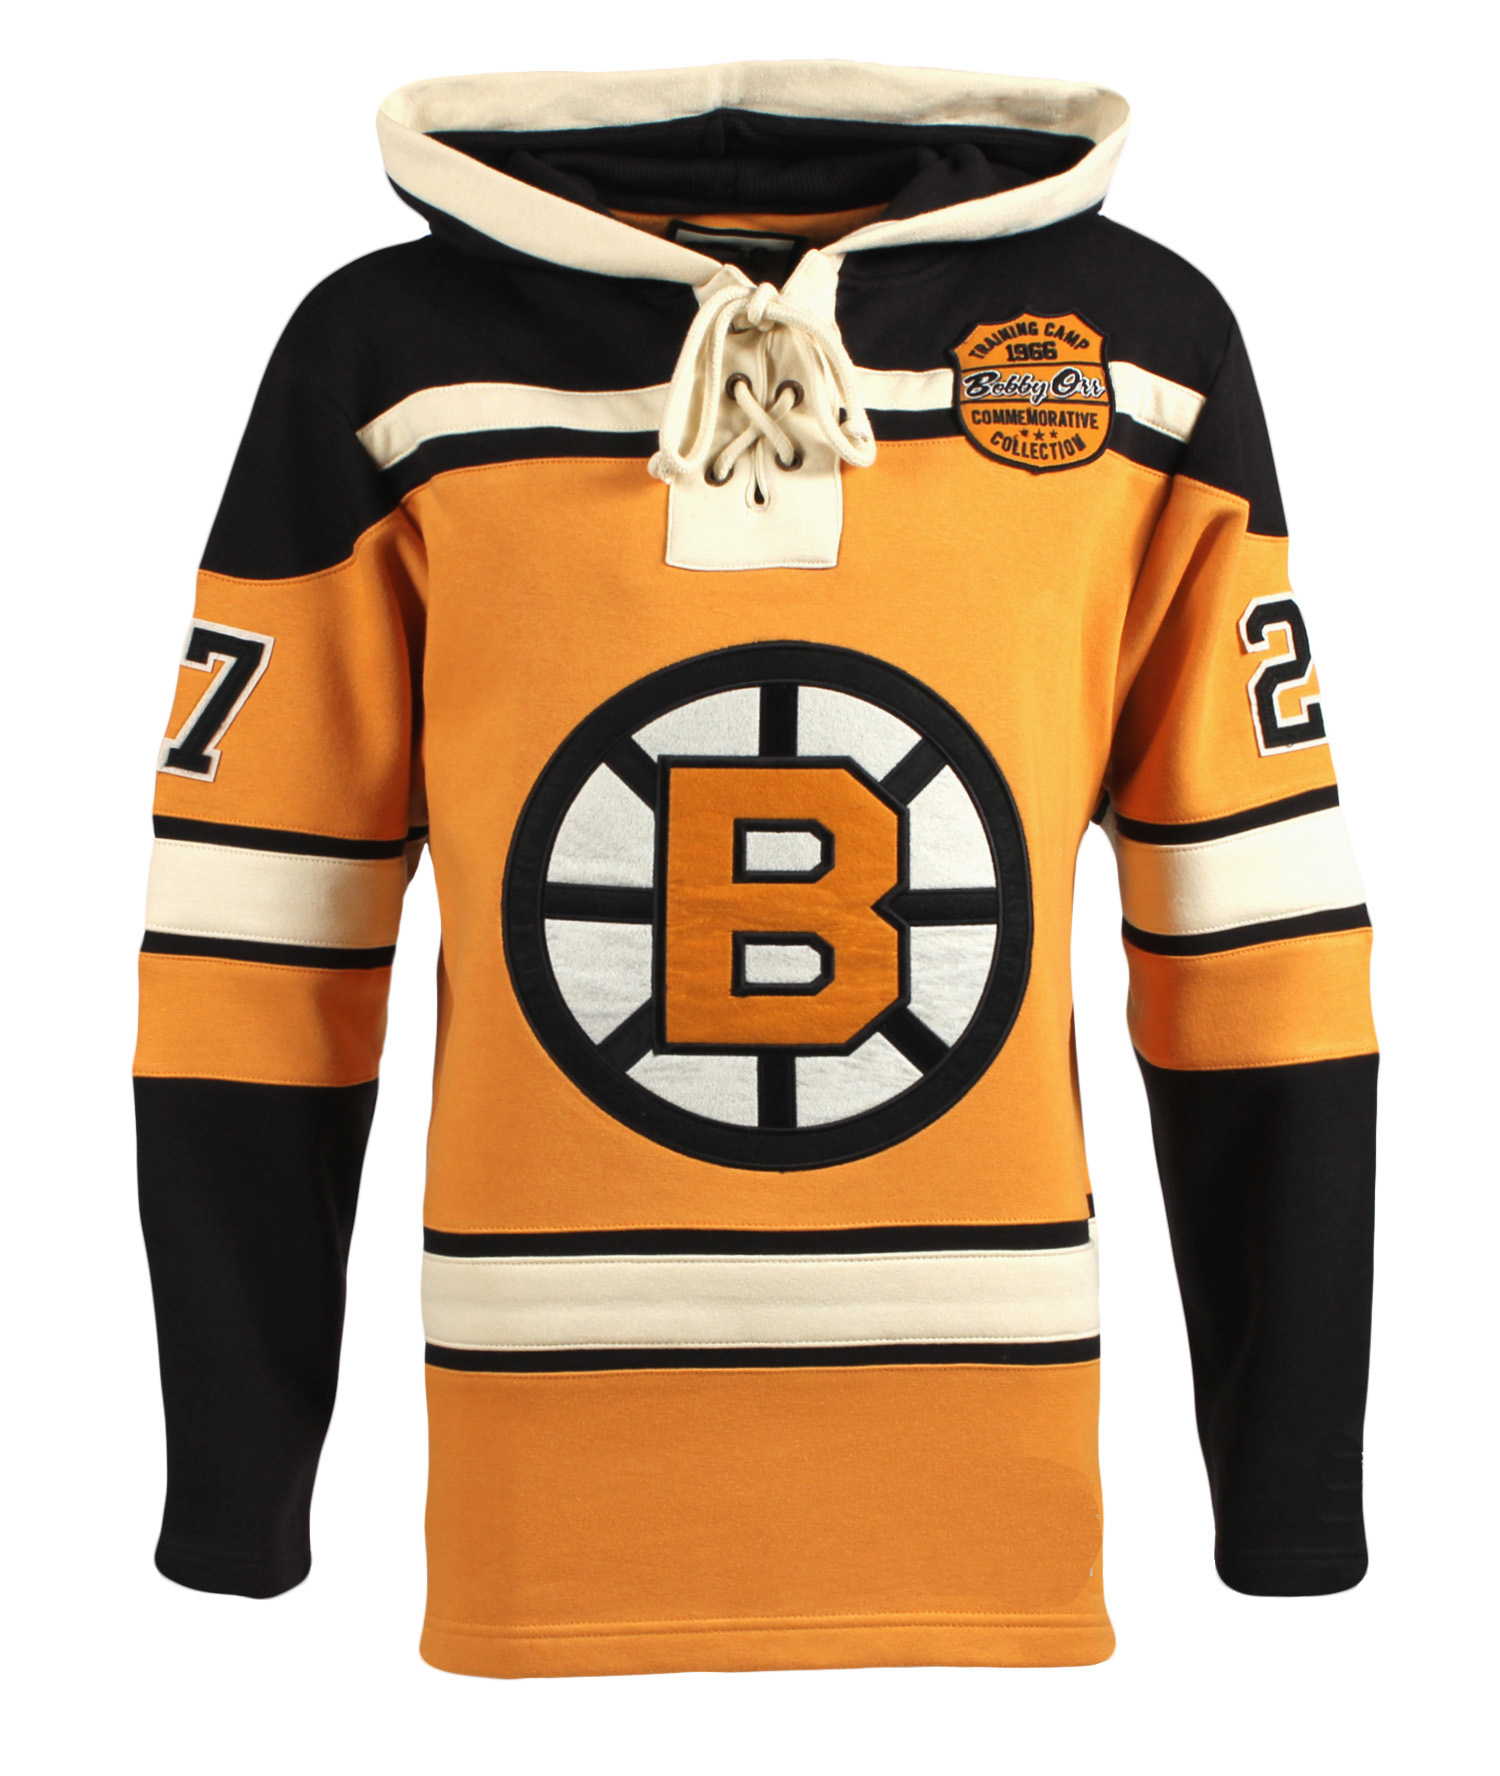 Boston Bruins Bobby Orr 1966 Training Camp Lace Hoodie Hockey Jersey ... f4021f1950d